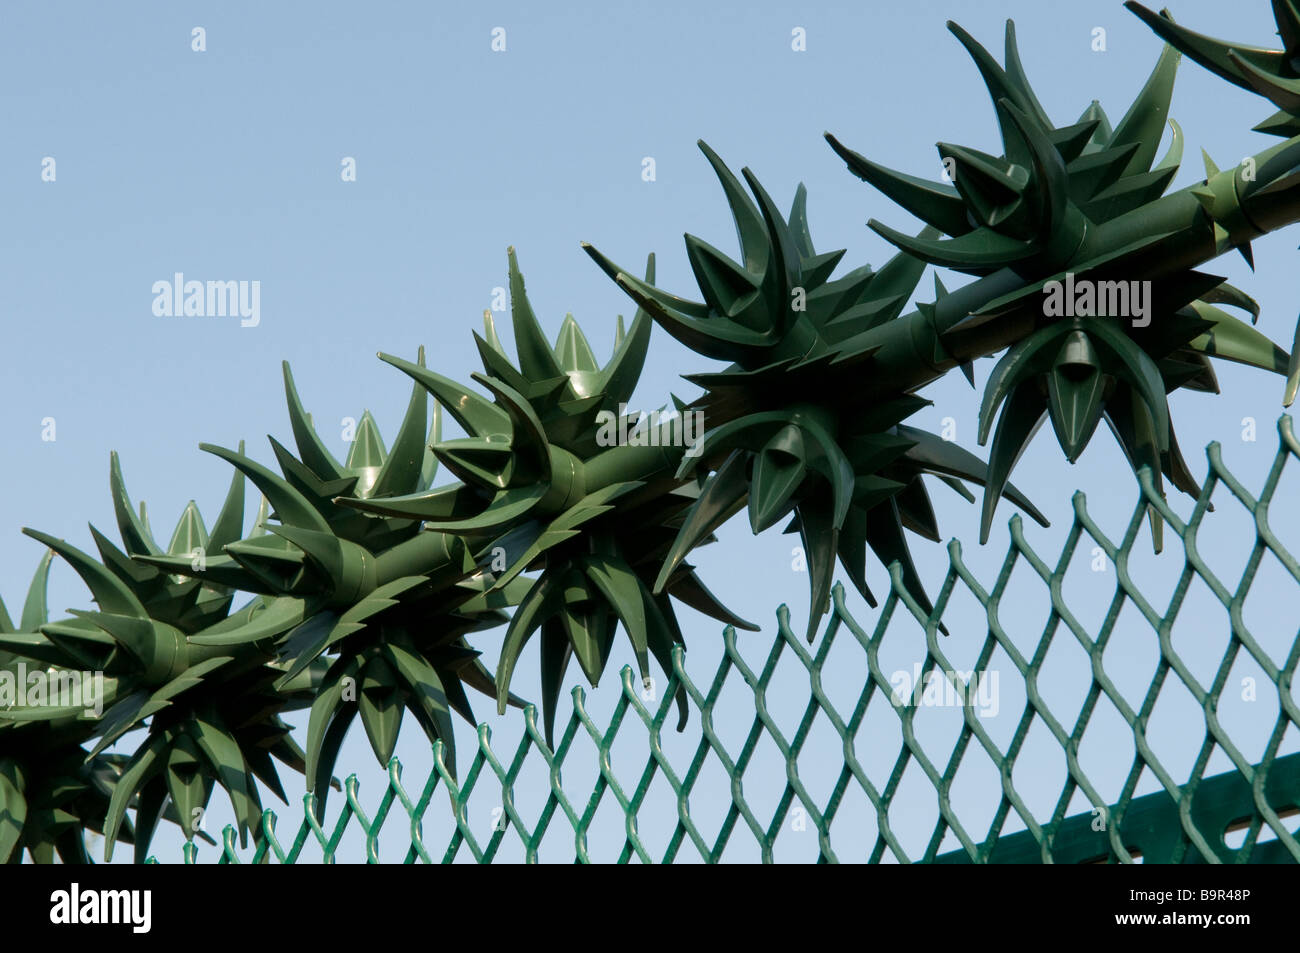 SECURITY FENCE MADE OF PLASTIC SPIKES ON AN ELECTRICITY SUB-STATION. SIGN ON FENCE READS DANGER OF DEATH. - Stock Image